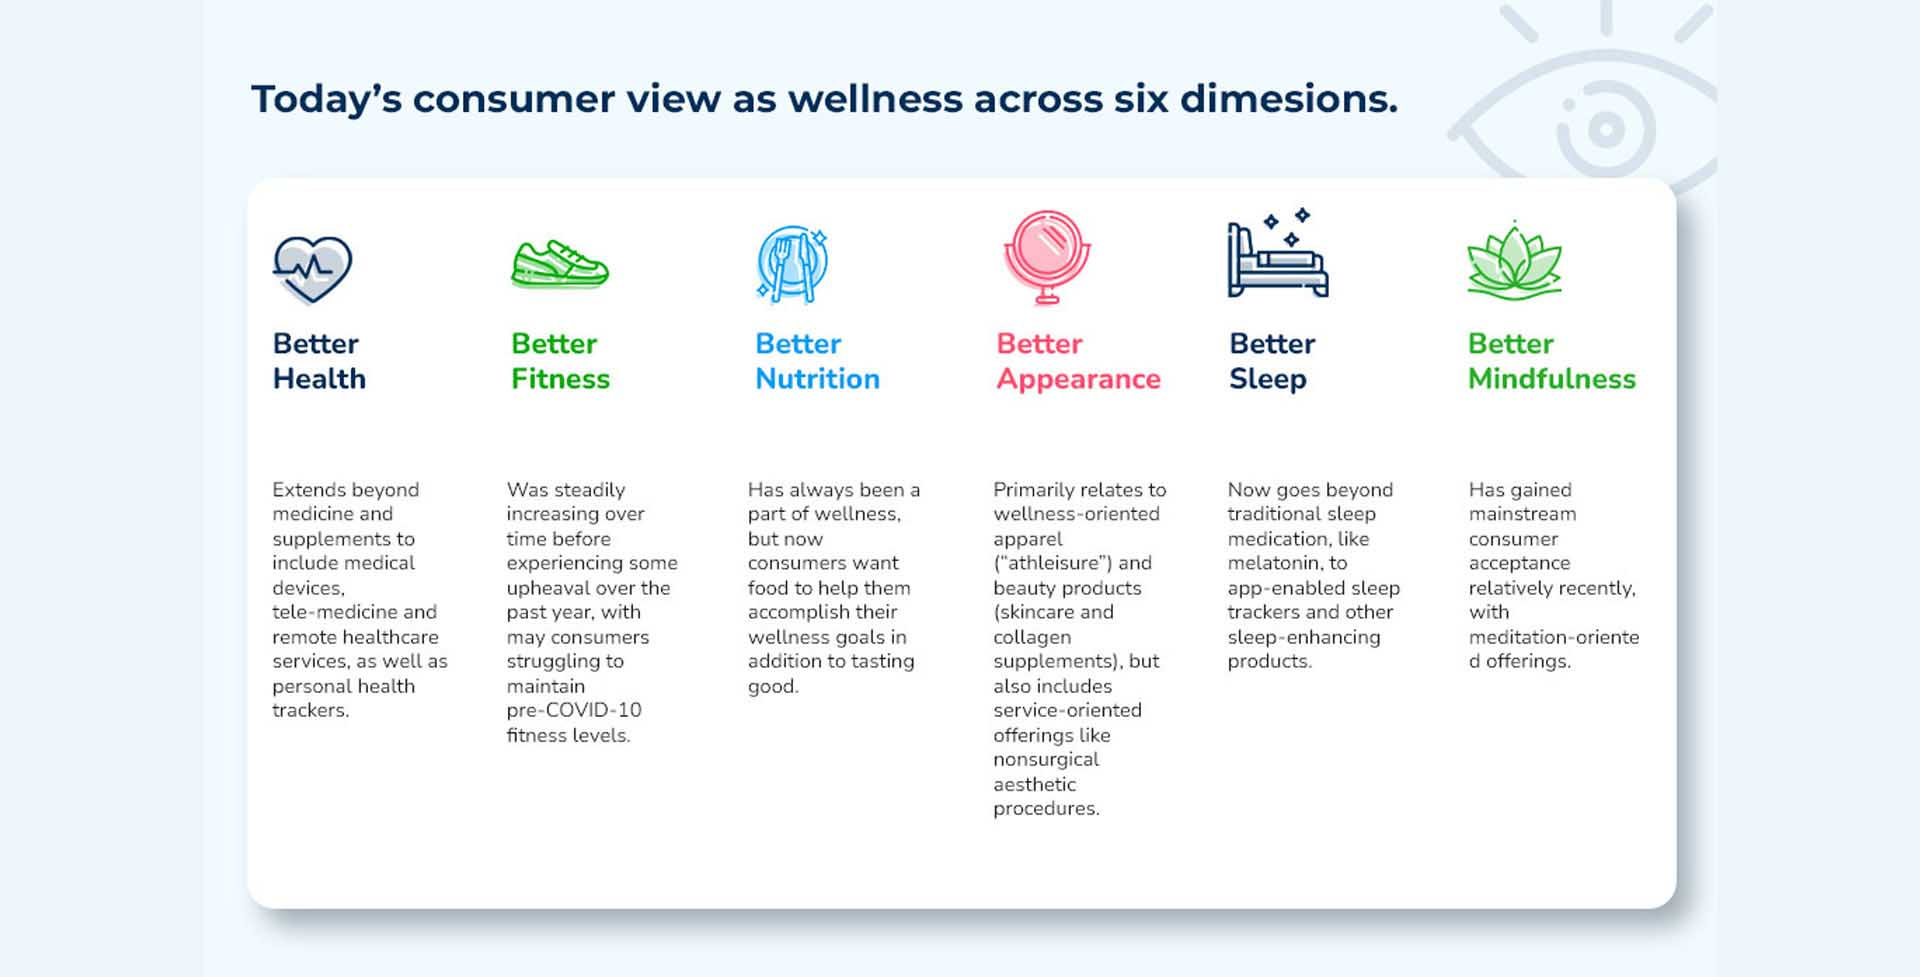 greenfield groves, lindsay giguiere, future of wellness, dimensions of wellness